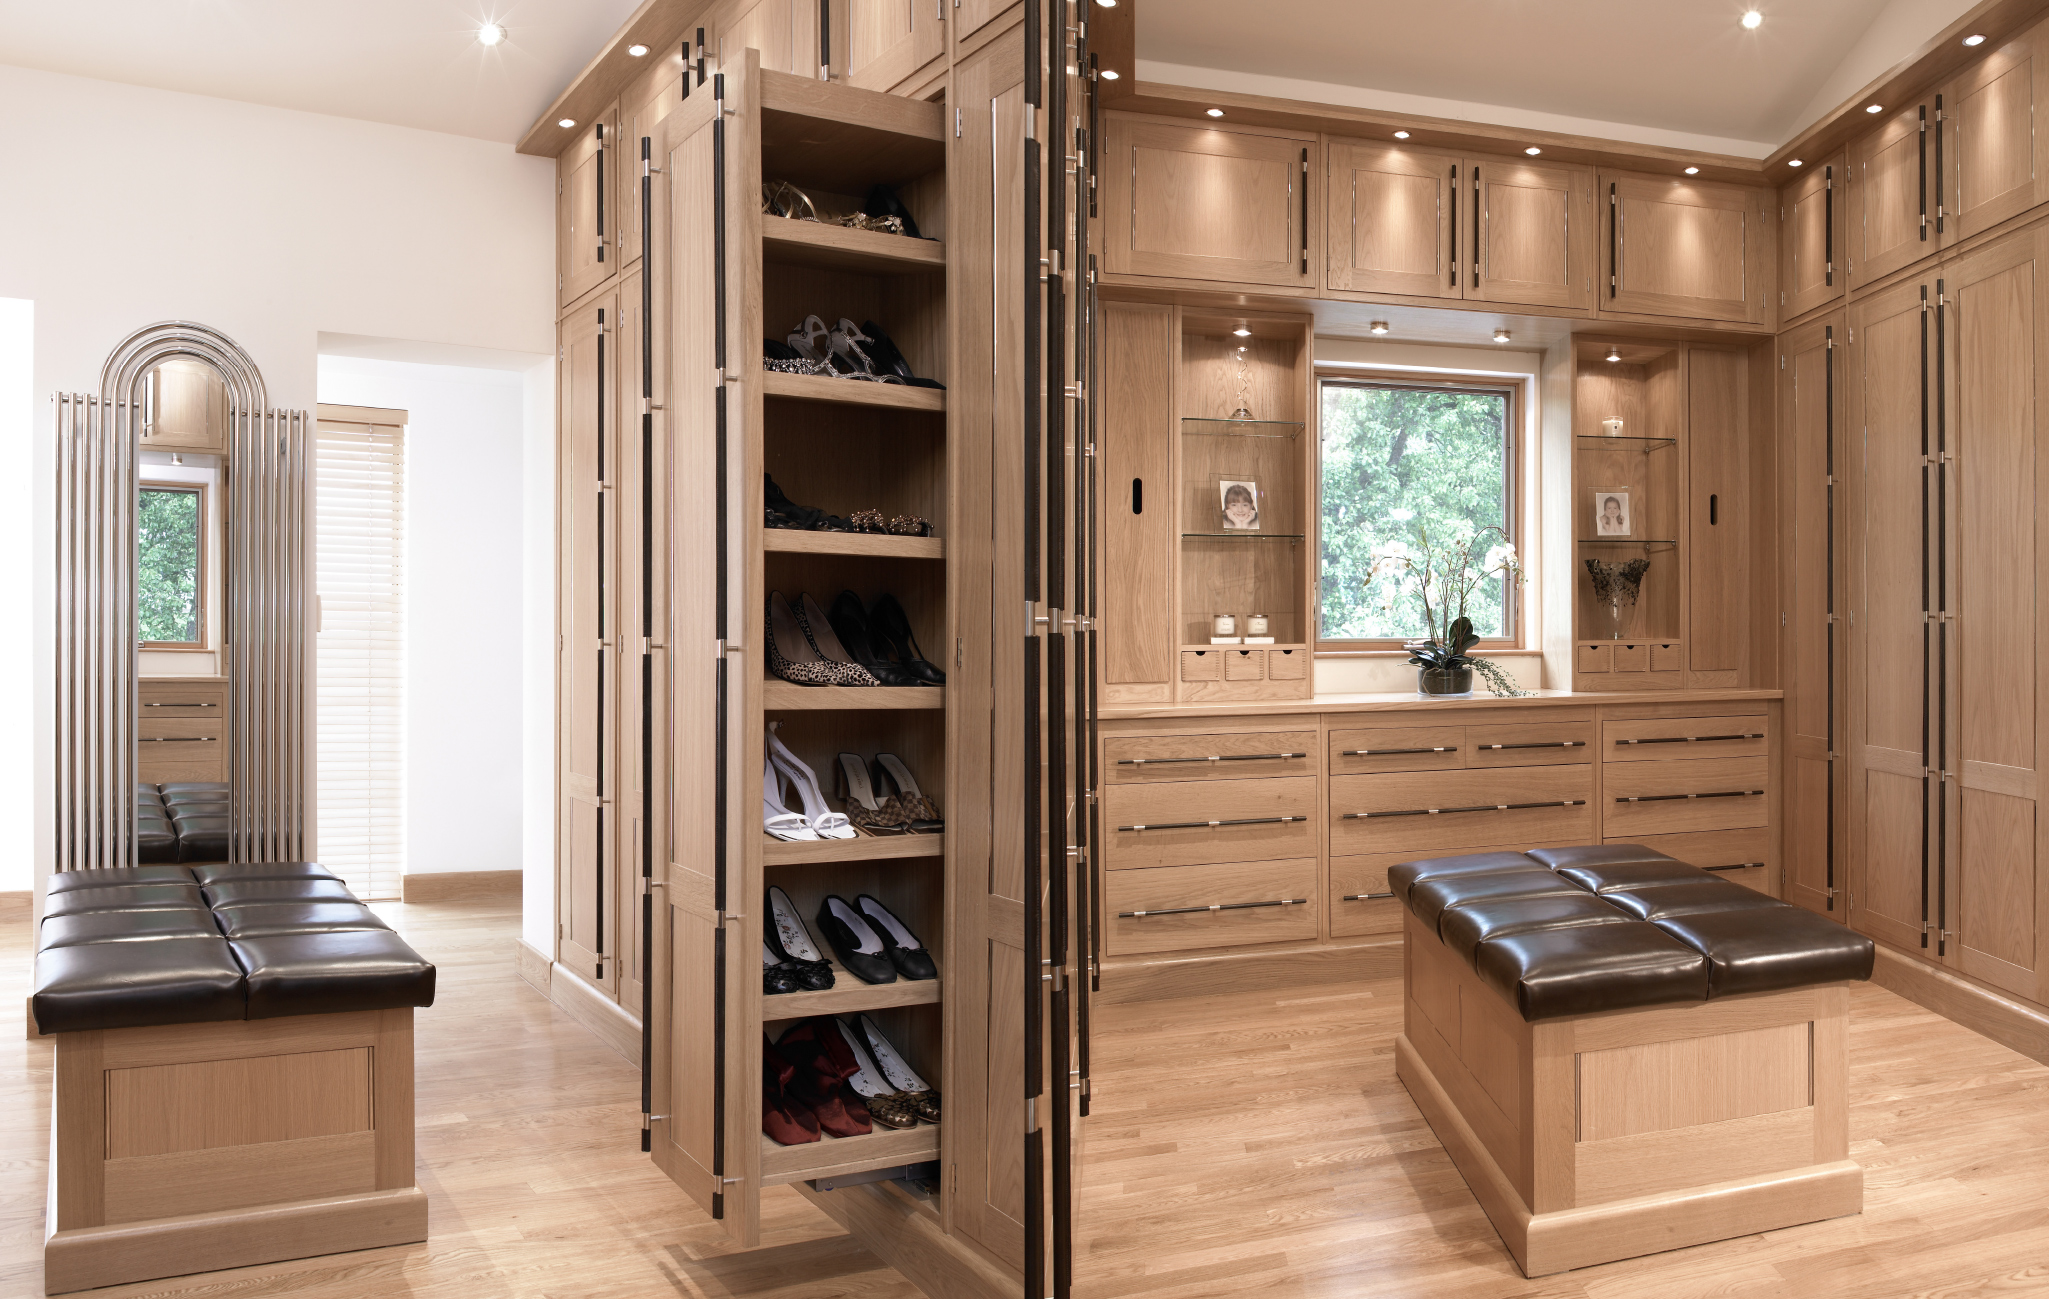 Incroyable Mark Wilkinson Furniture Collections All House Dressing Room